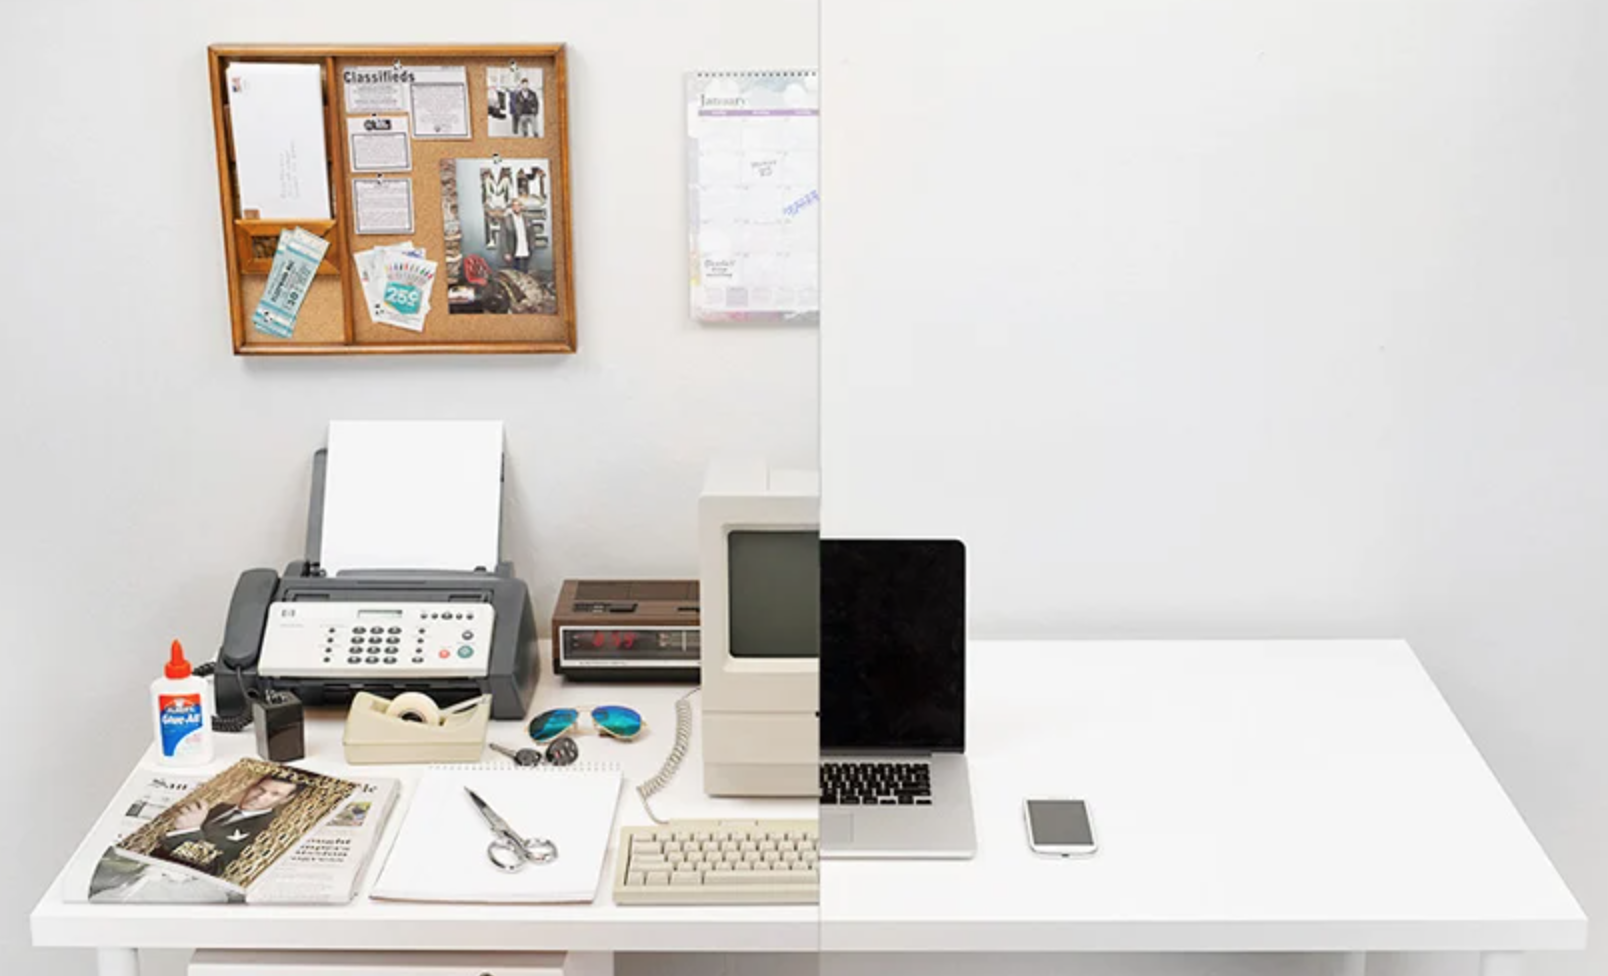 A split image - half shows a cluttered office desk of the past, the other a modern office desk with only a laptop and phone